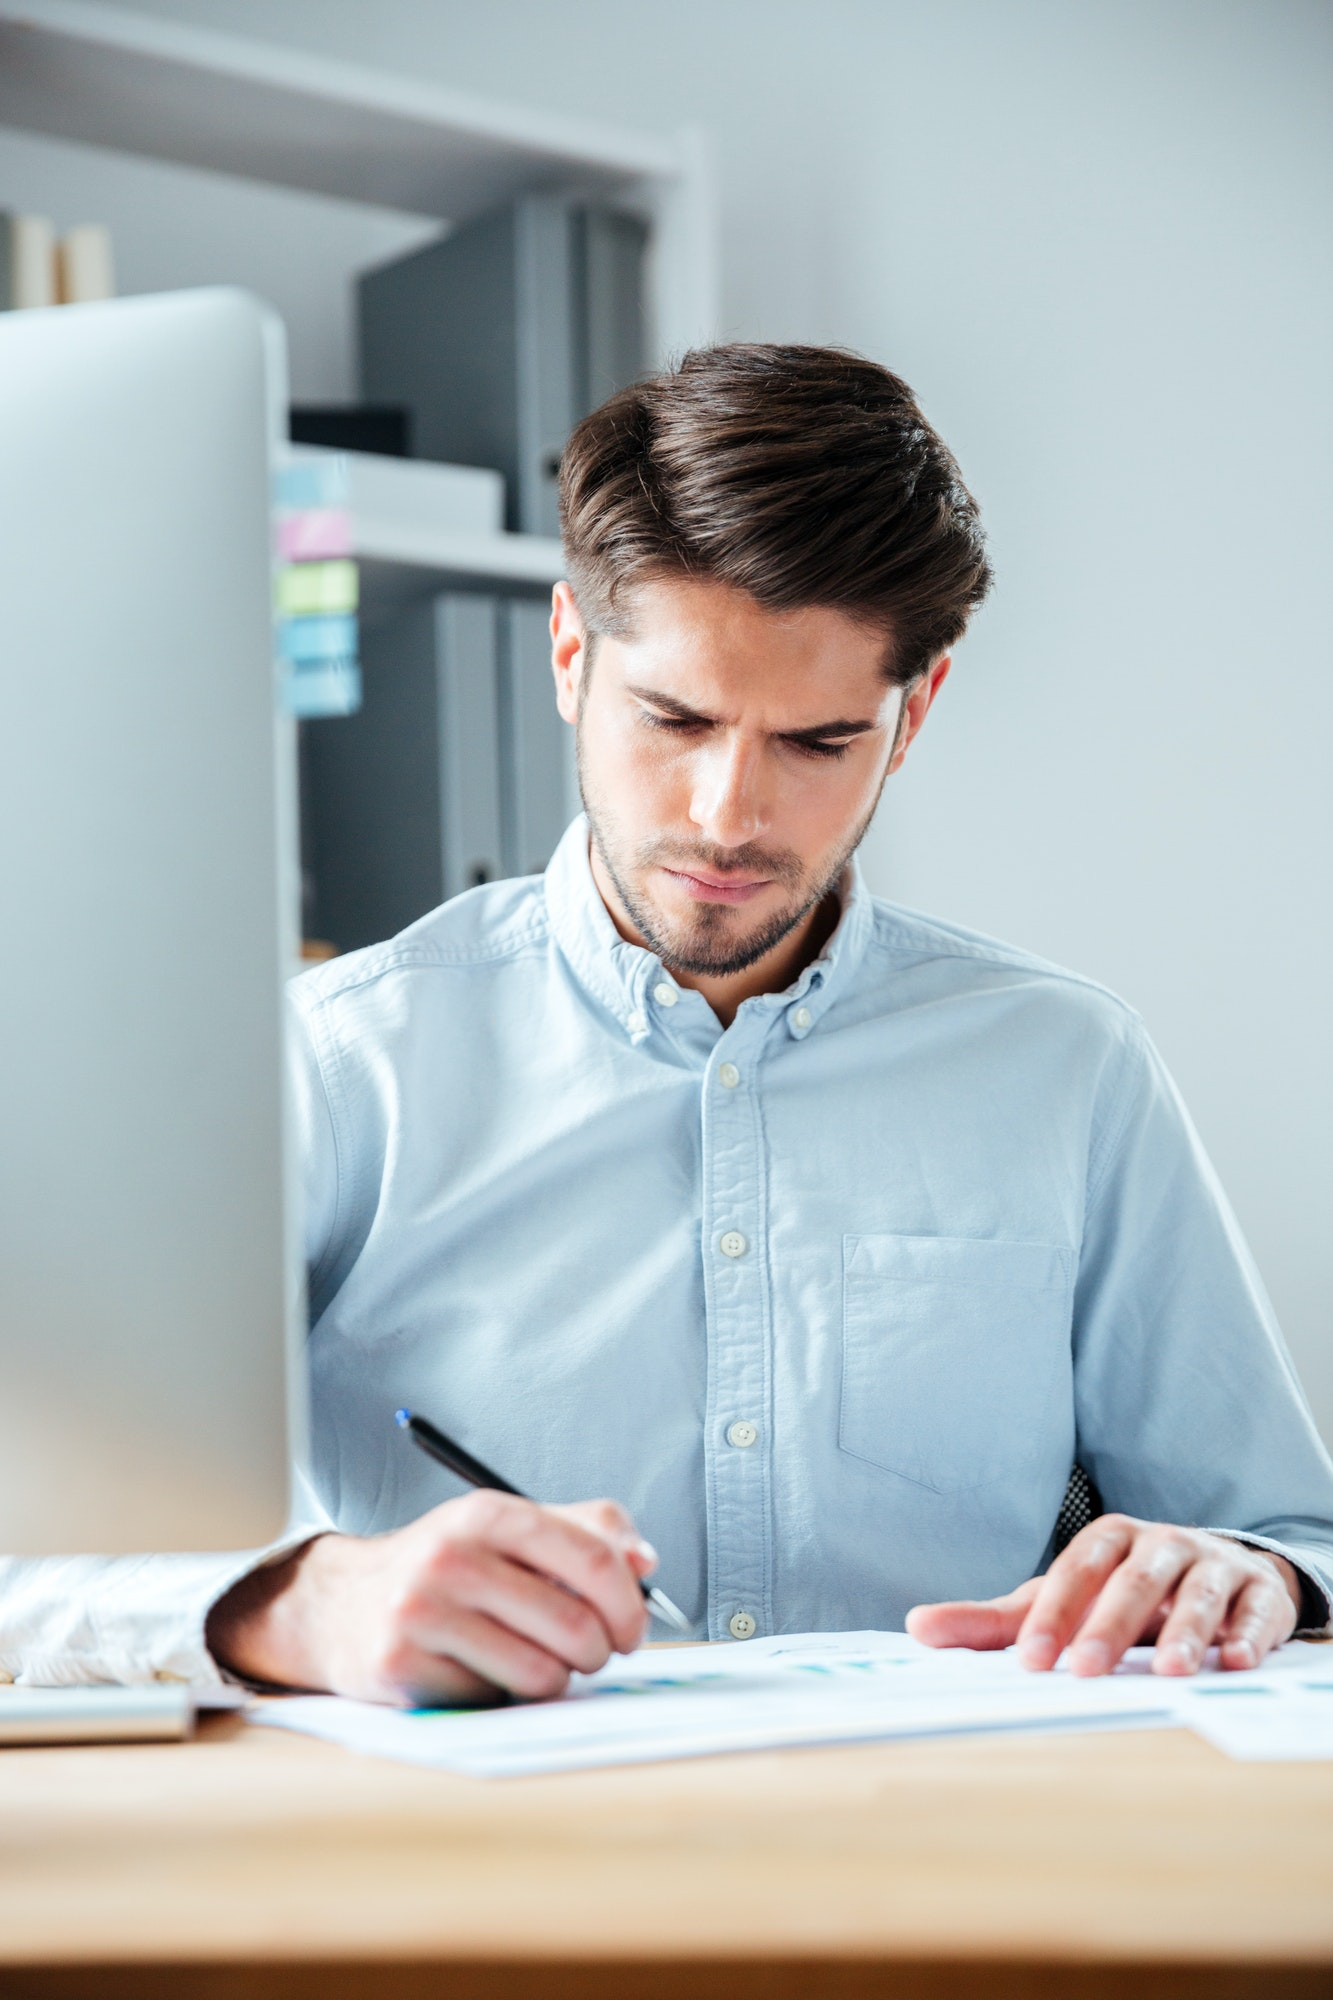 Confident businessman sitting at the table and signing document